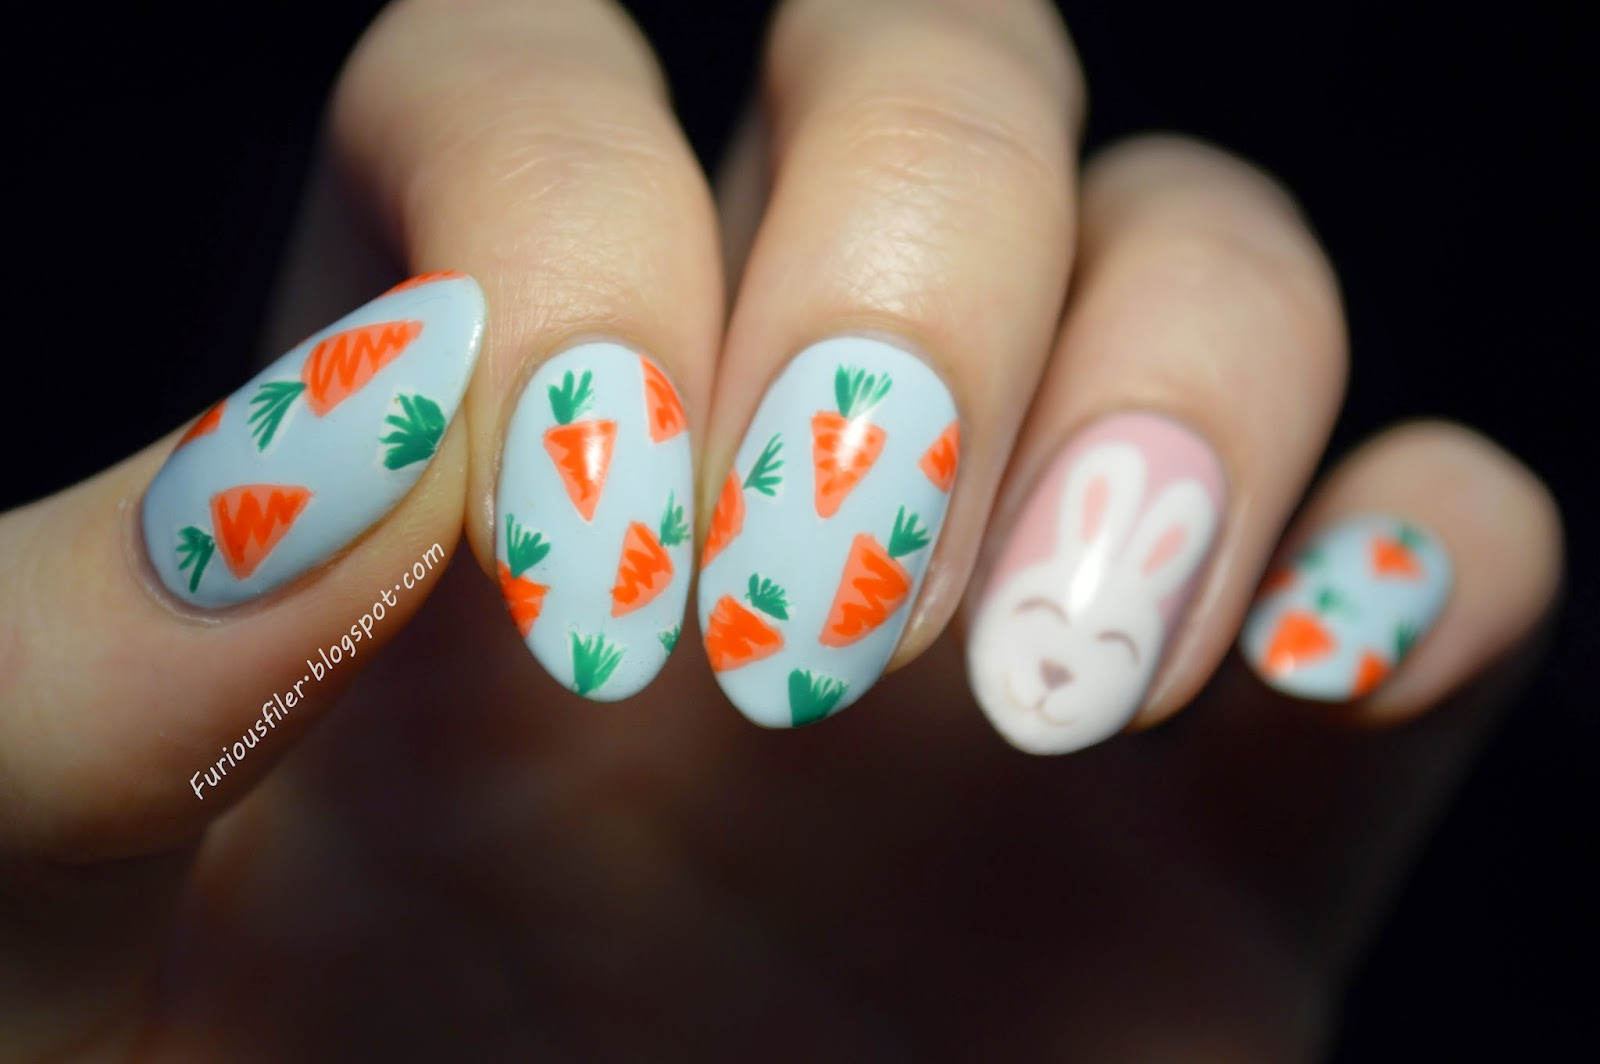 carrots, bunny, easter, spring, pastels